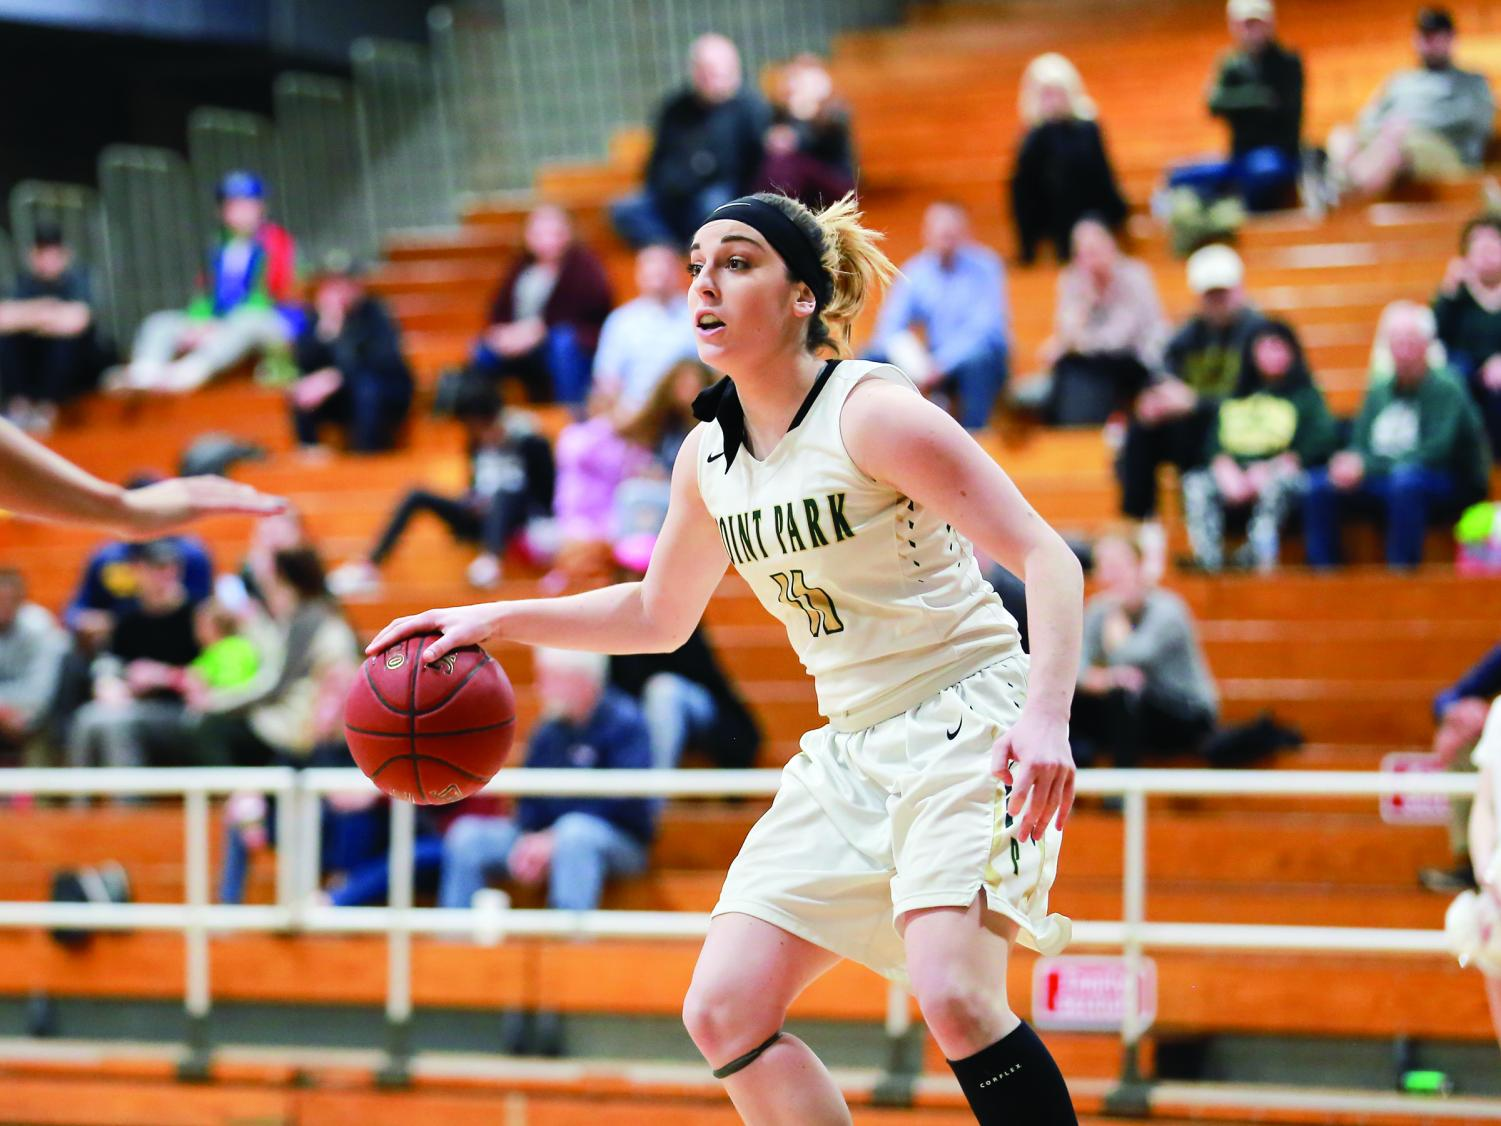 Senior Kaitlyn Smith makes an offensive push during her senior night contest against Rio Grande. This past weekend, Smith put up 15 points in a contest against Ohio Christian University.